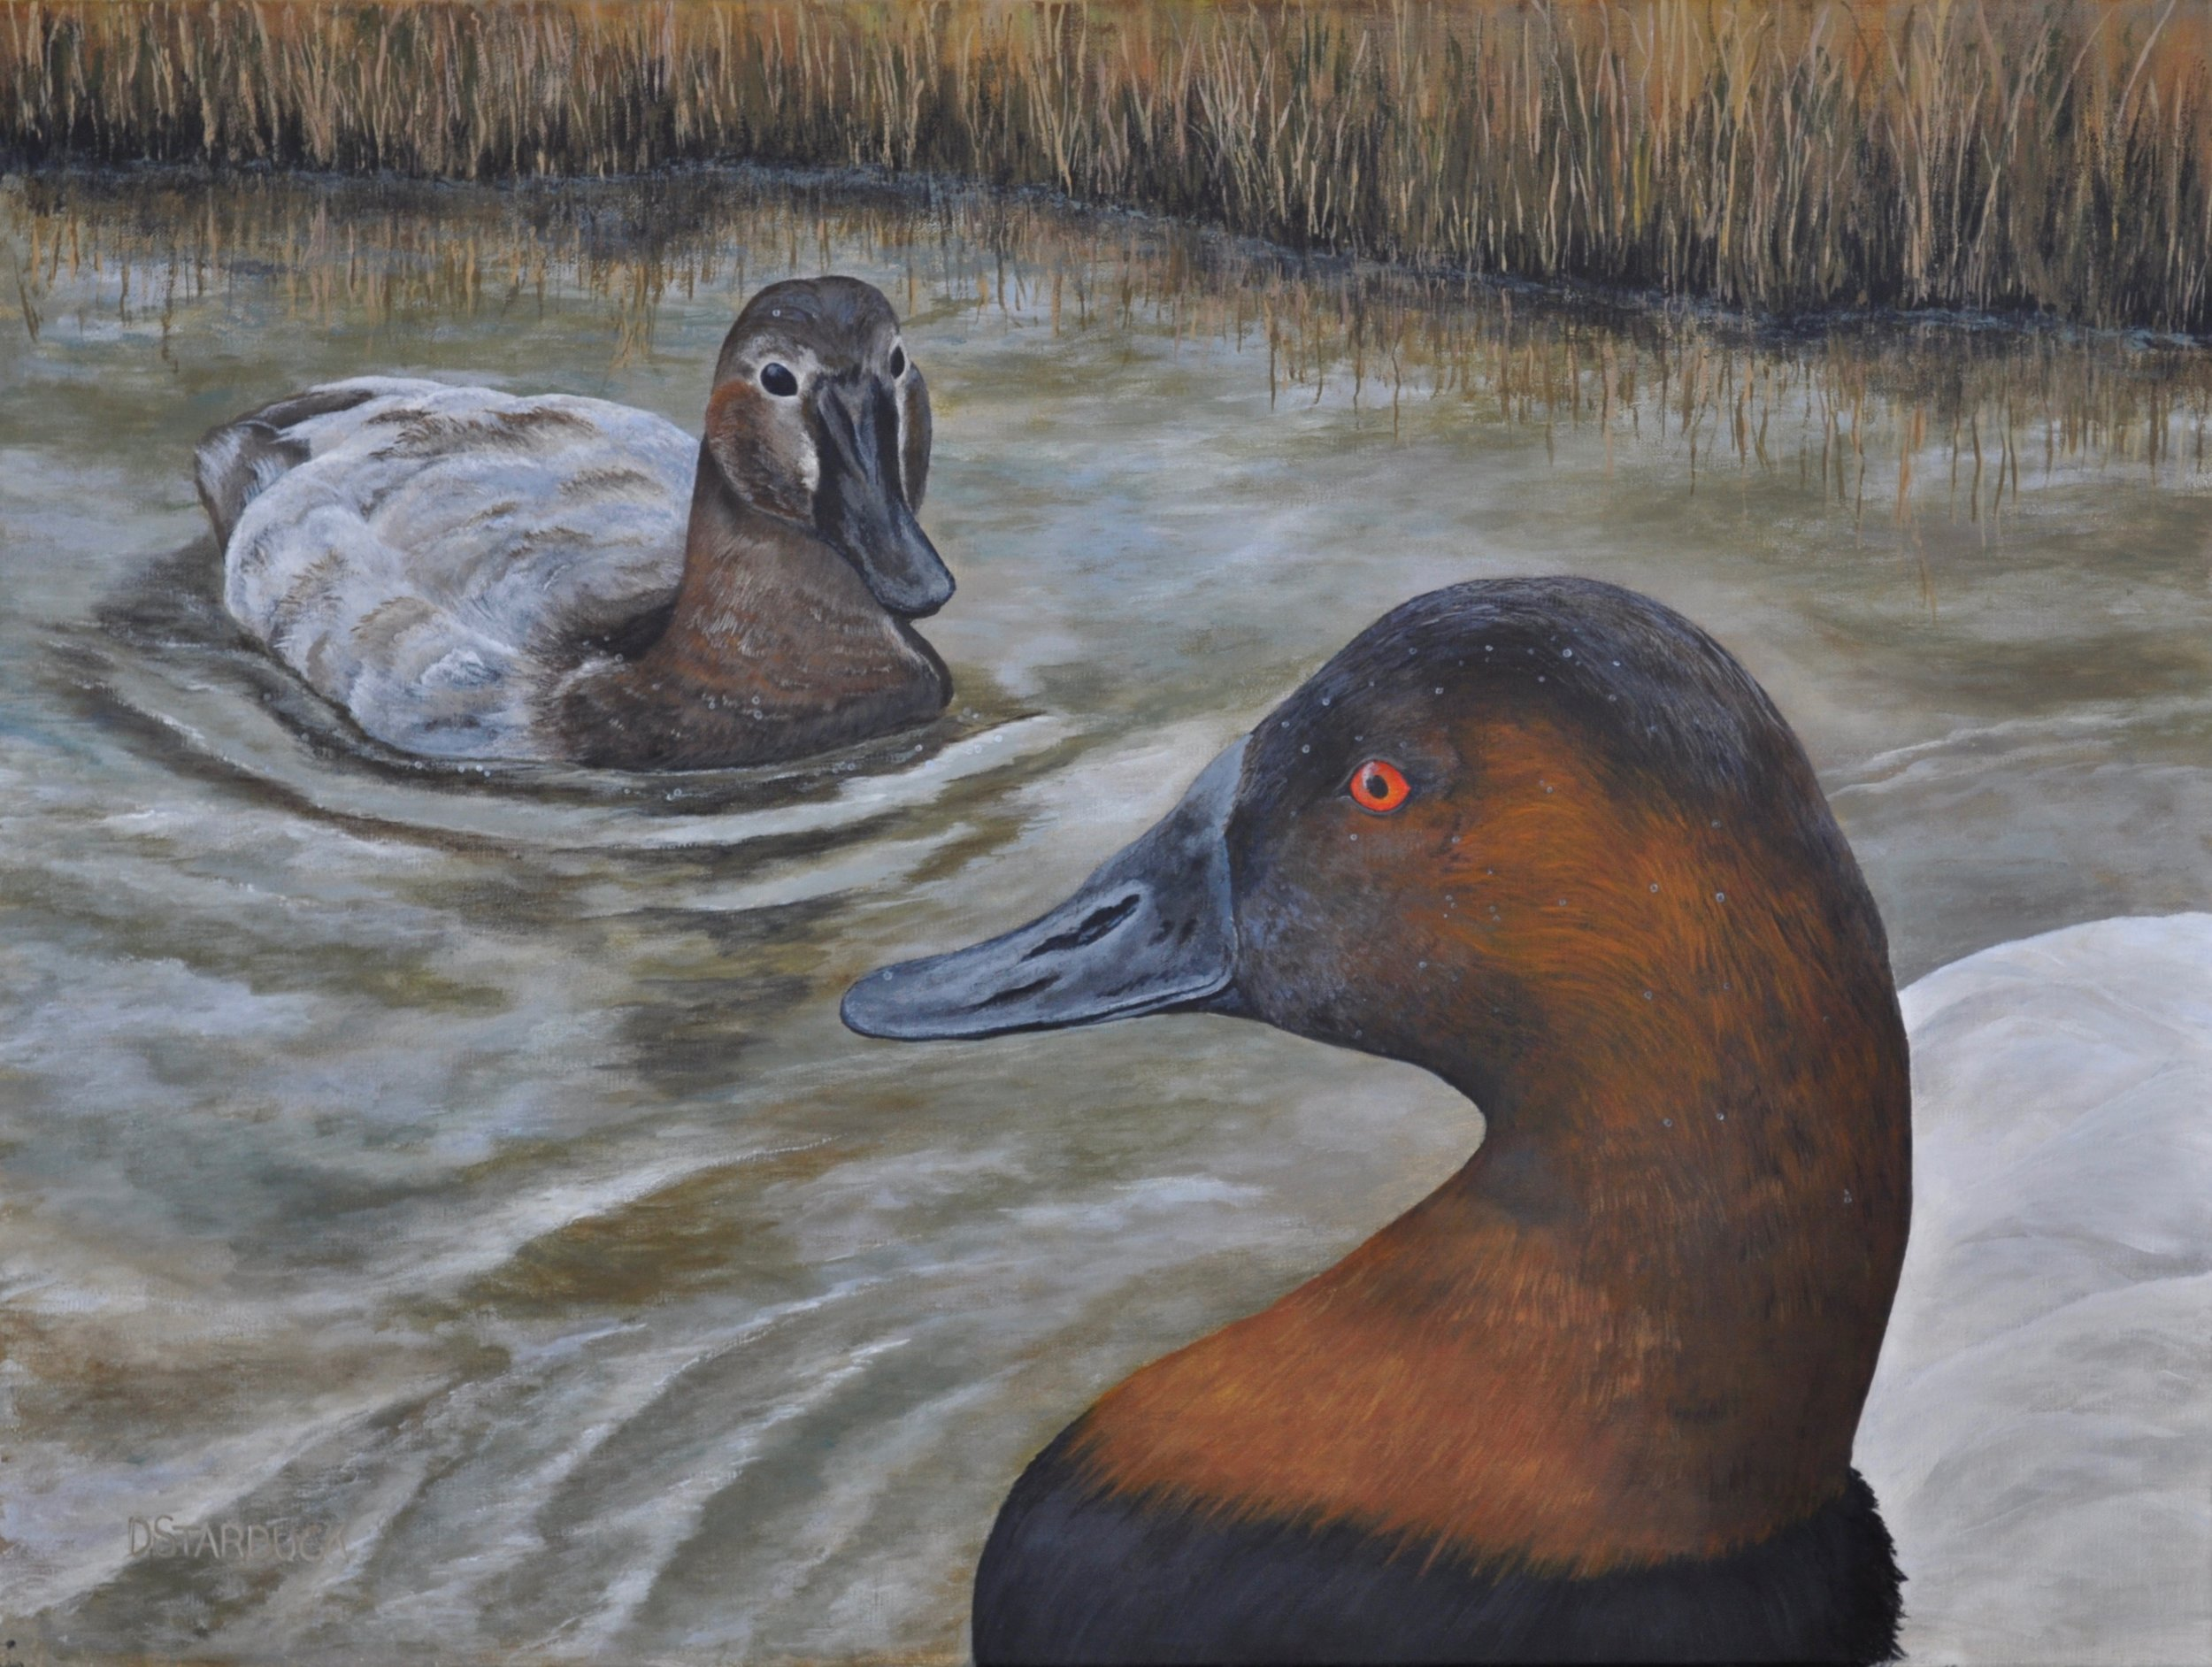 """Introducing Mr. & Mrs. Canvasback""  Original: Acrylic on Linen, 24"" x 18"""